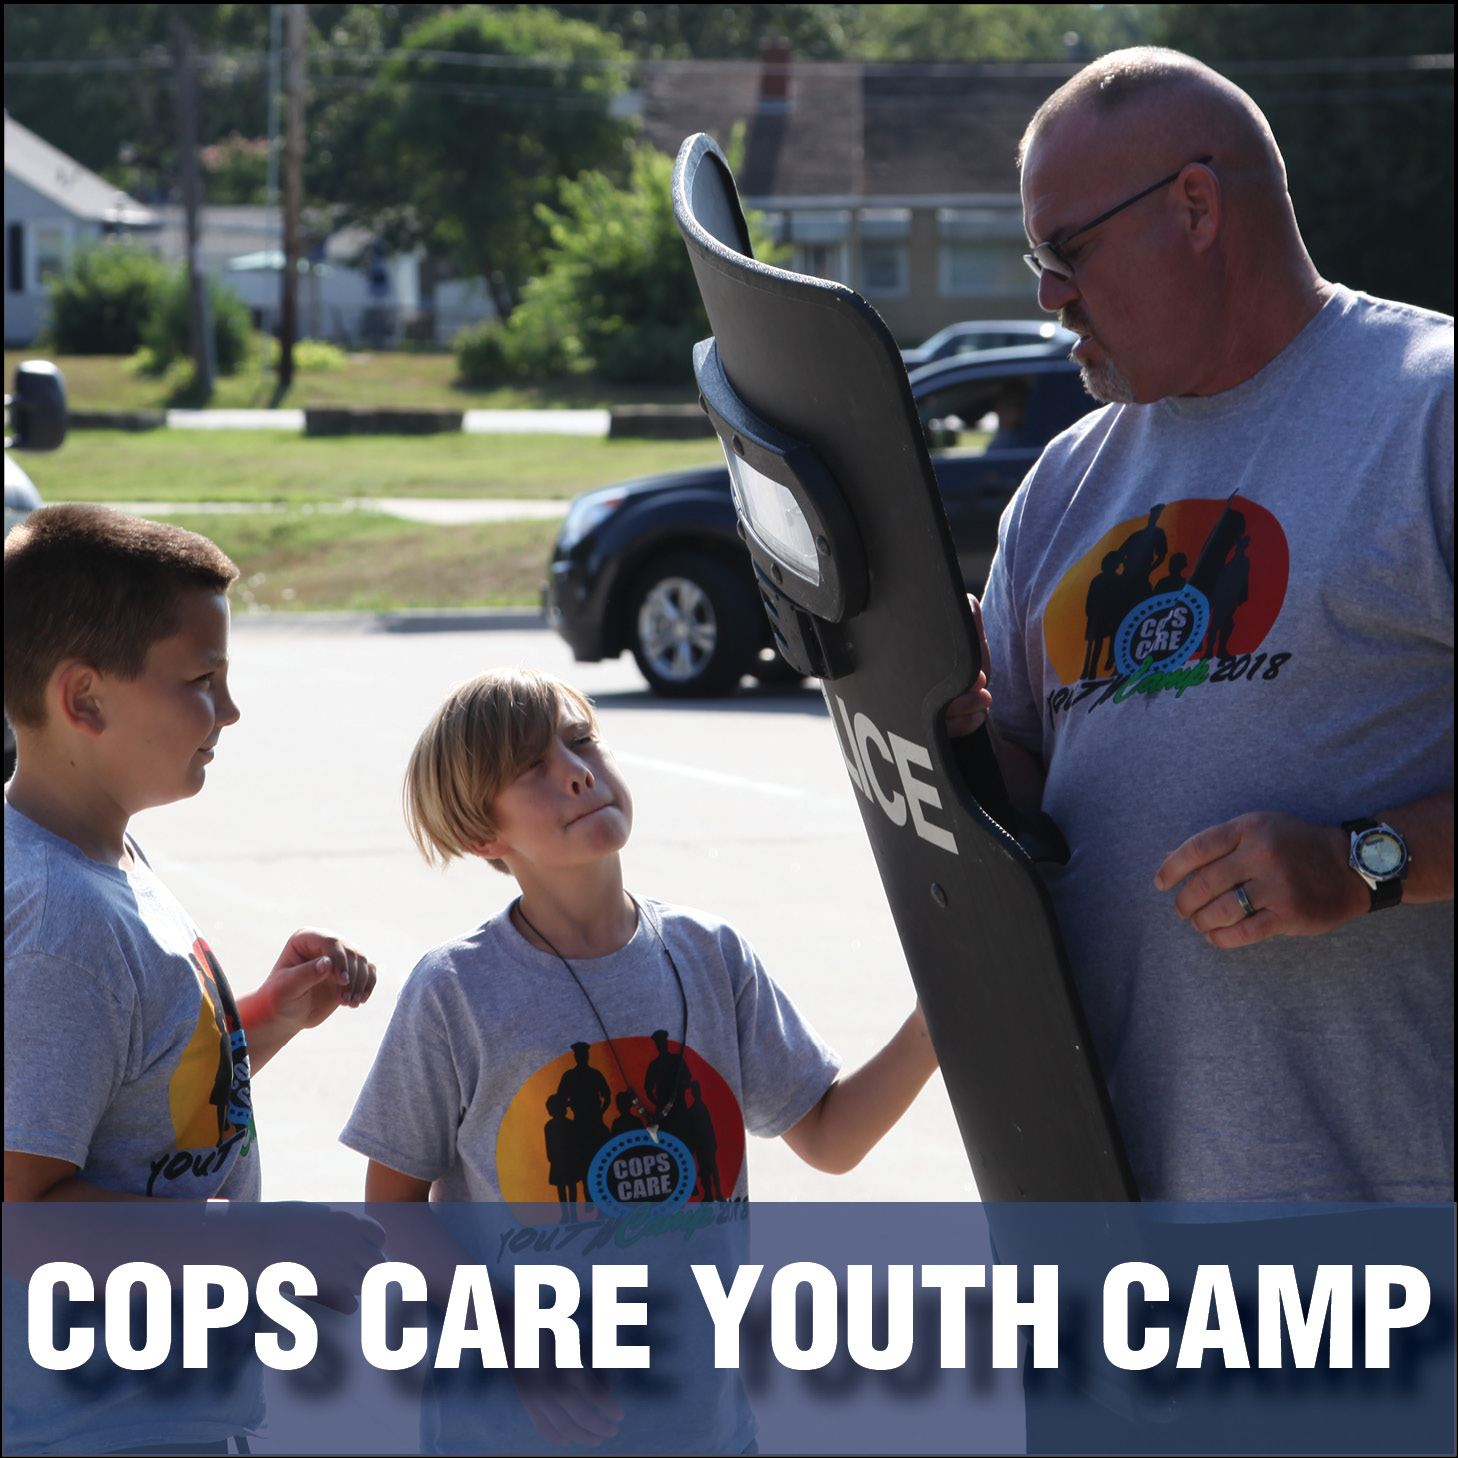 Cops Care Youth Camp